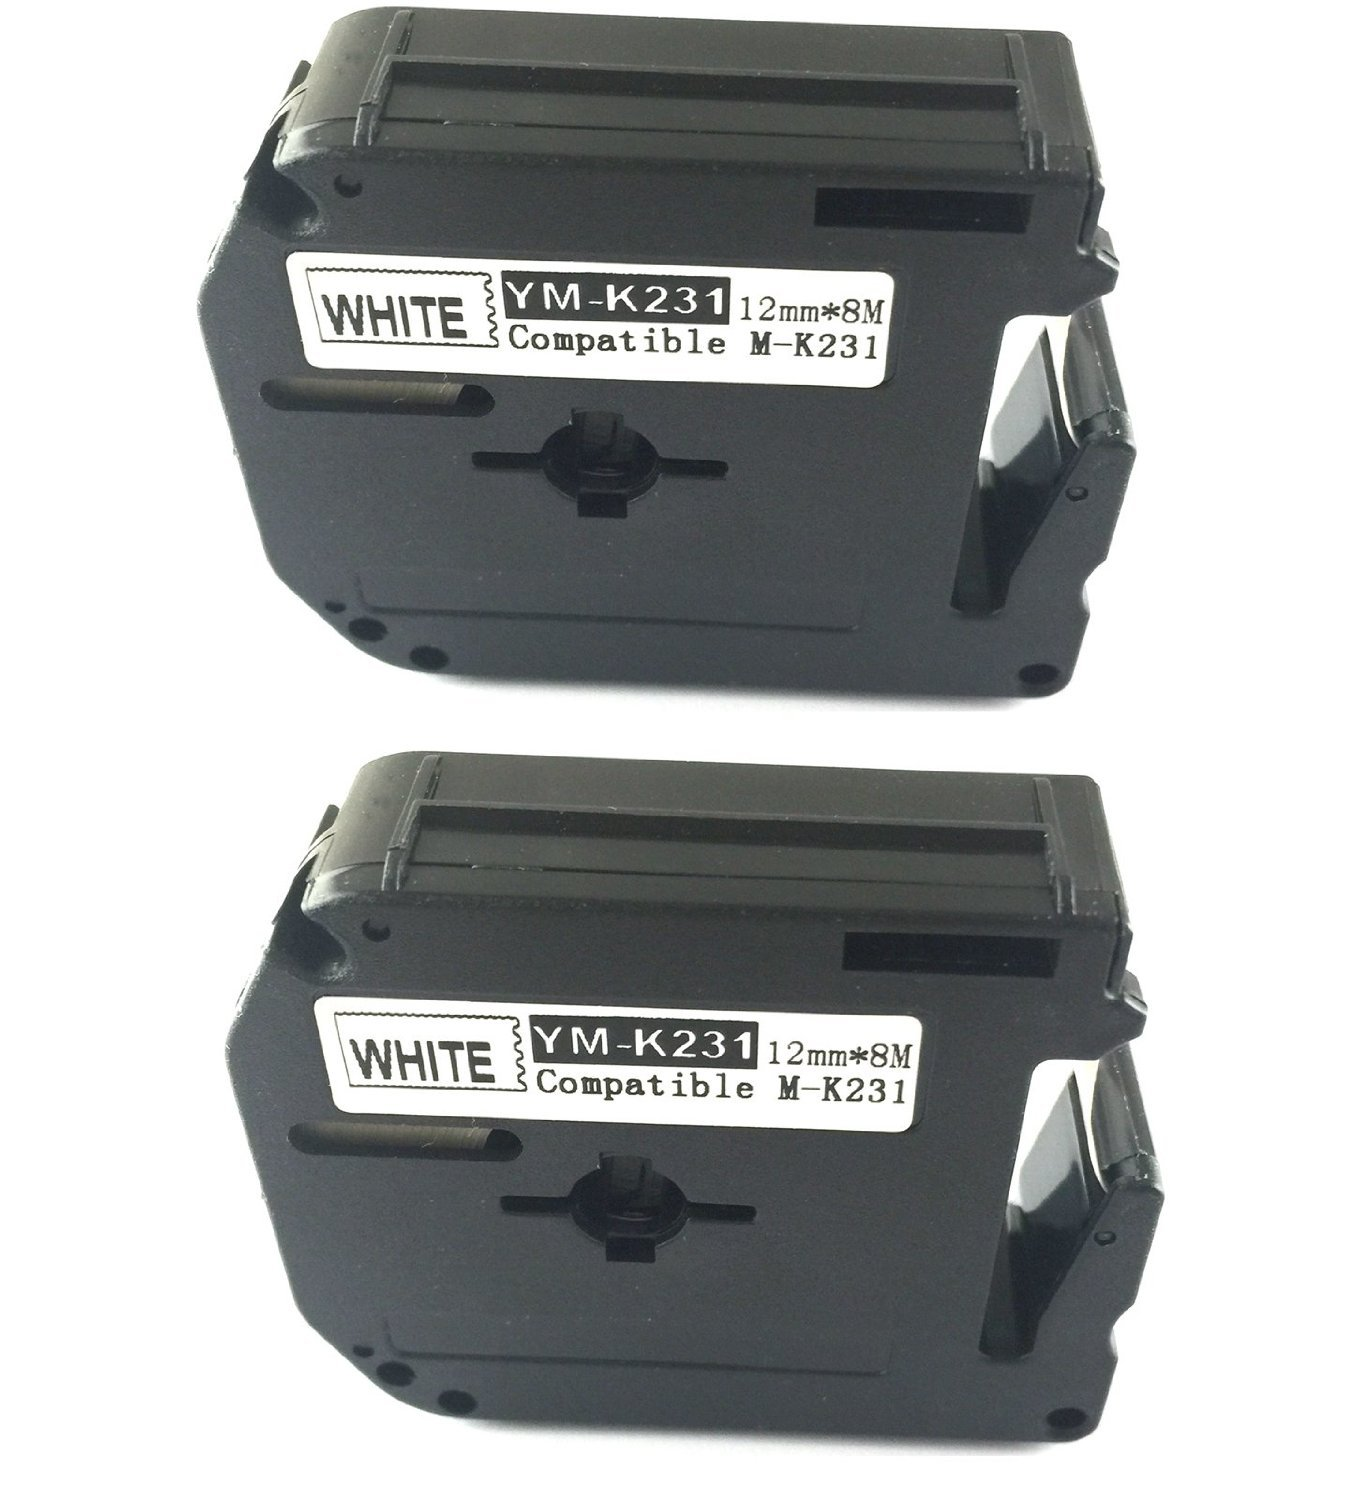 2PK compatible for Brother P-touch Label Tape Black on White M231 M-K231 MK231 PT70 PT80 PT100, PT110 ACD.auto